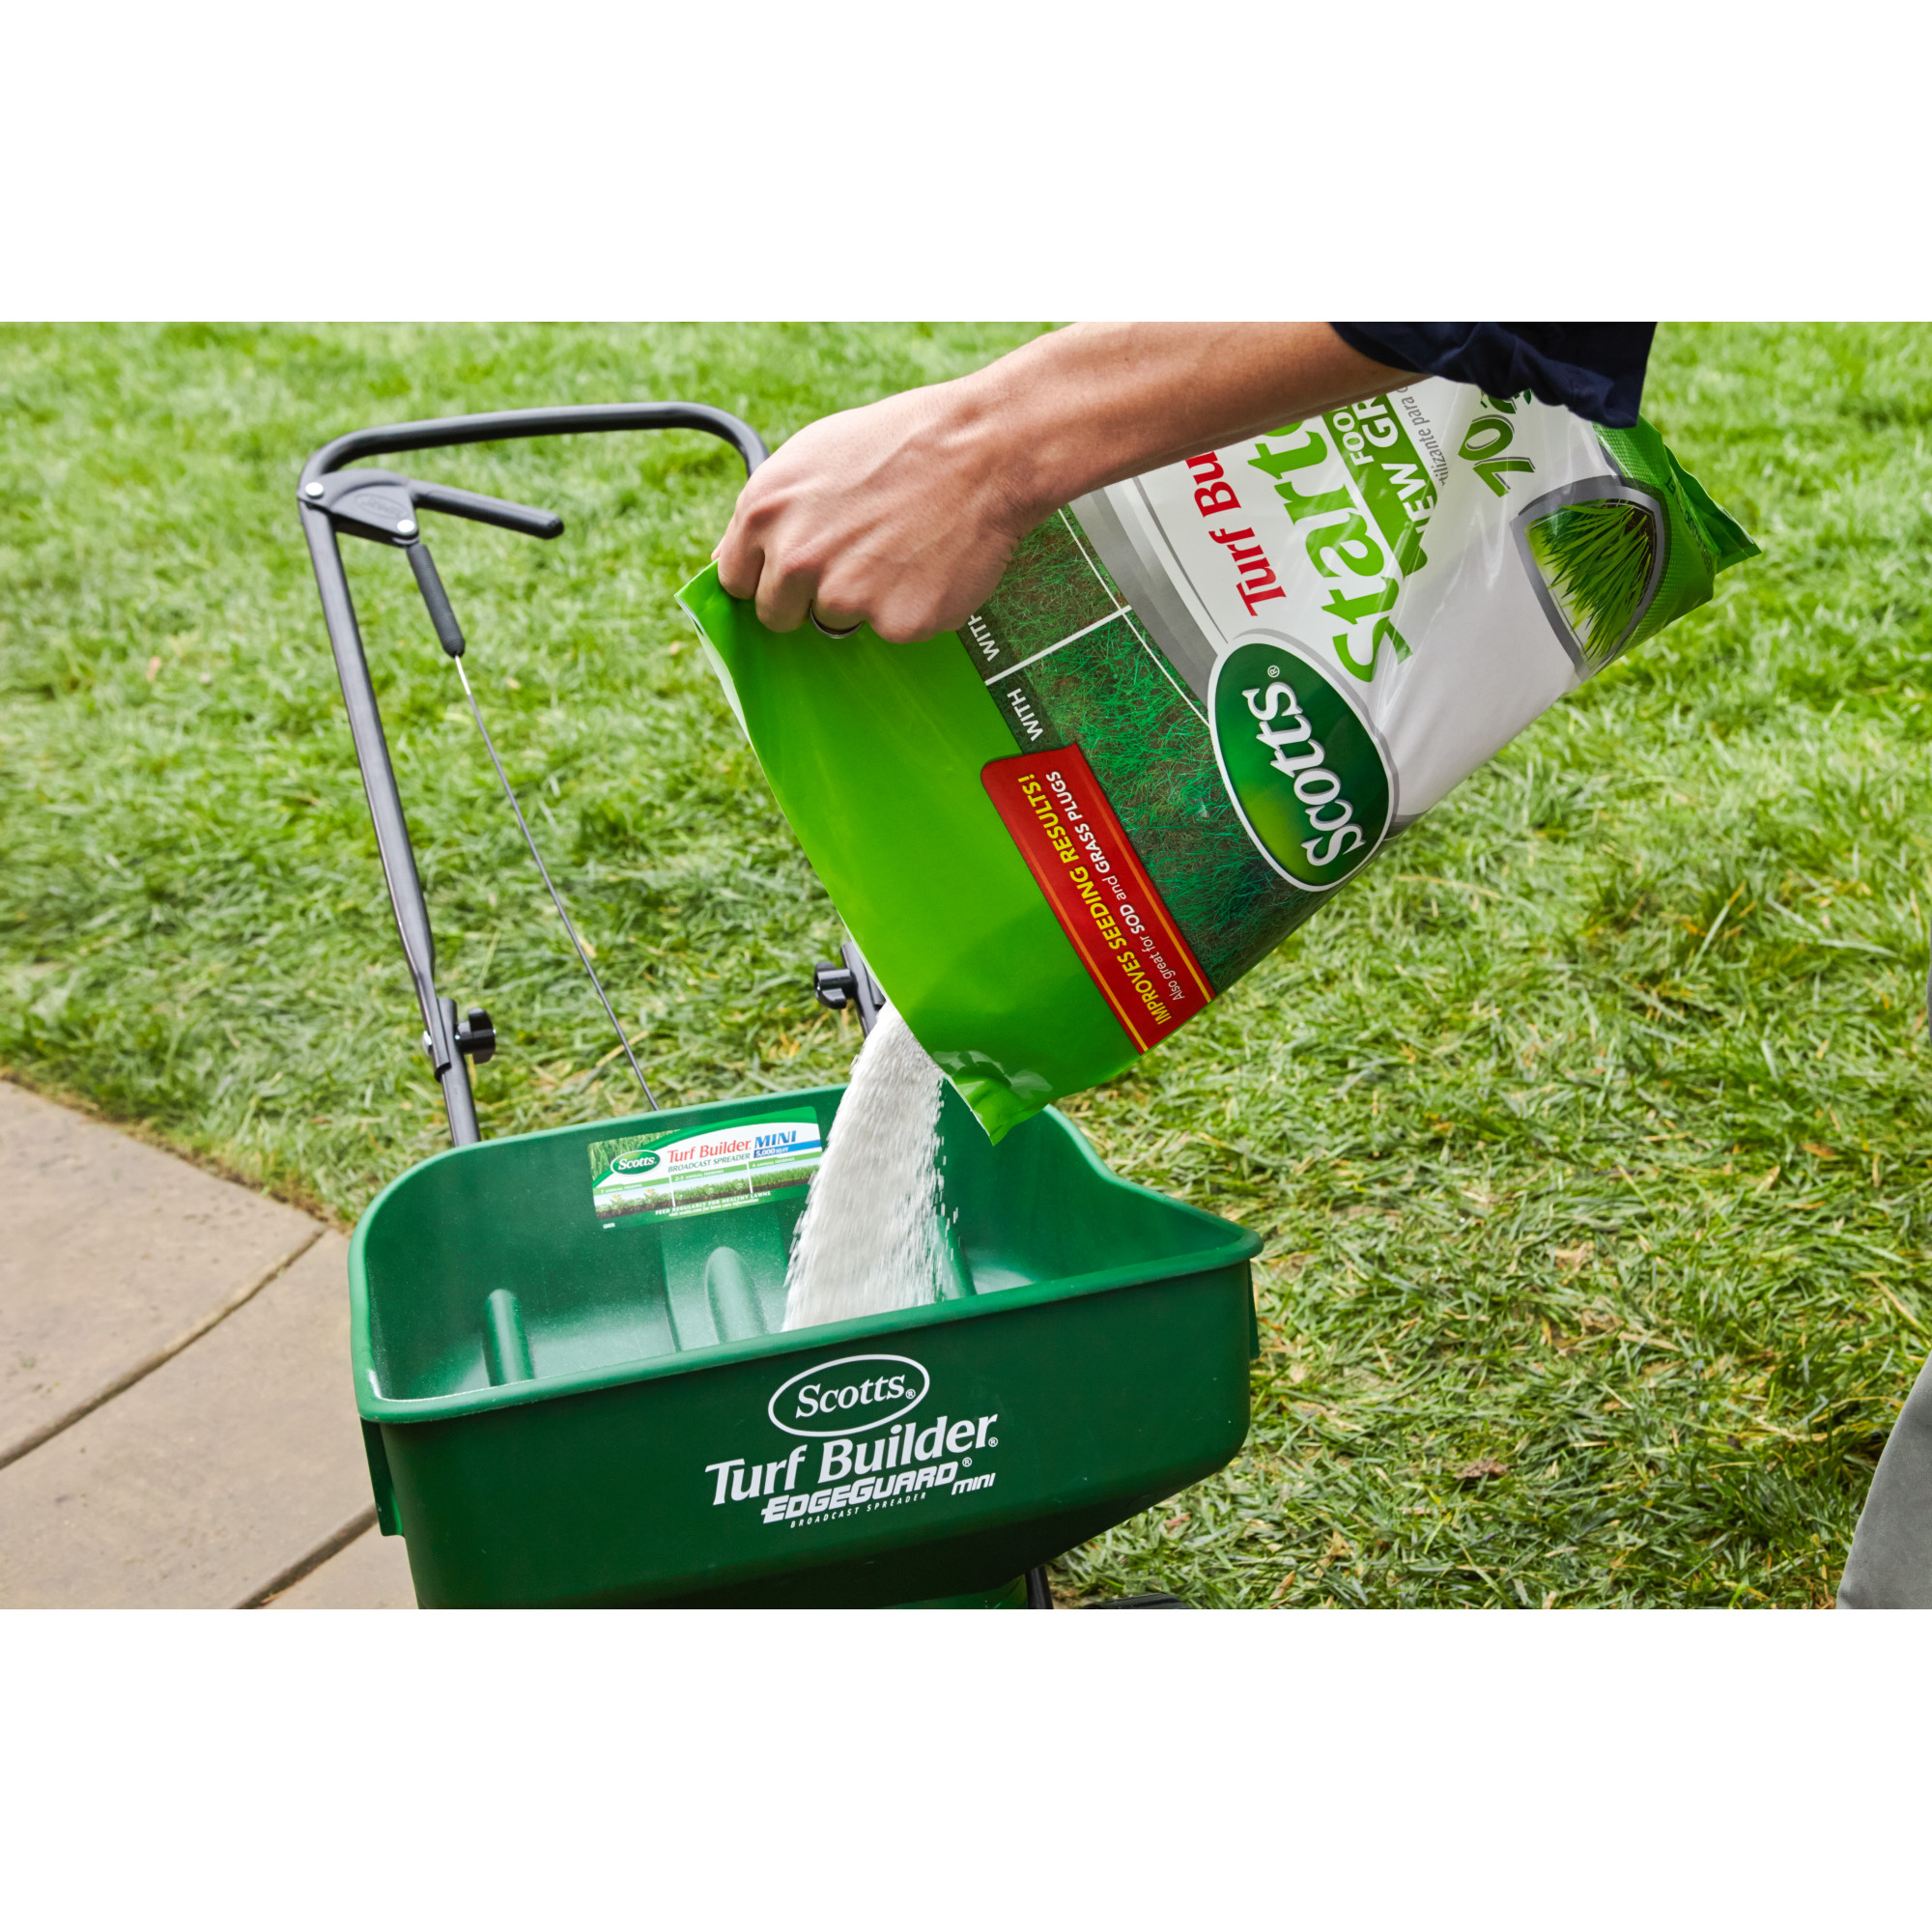 Elegant Scotts Lawn Care Program